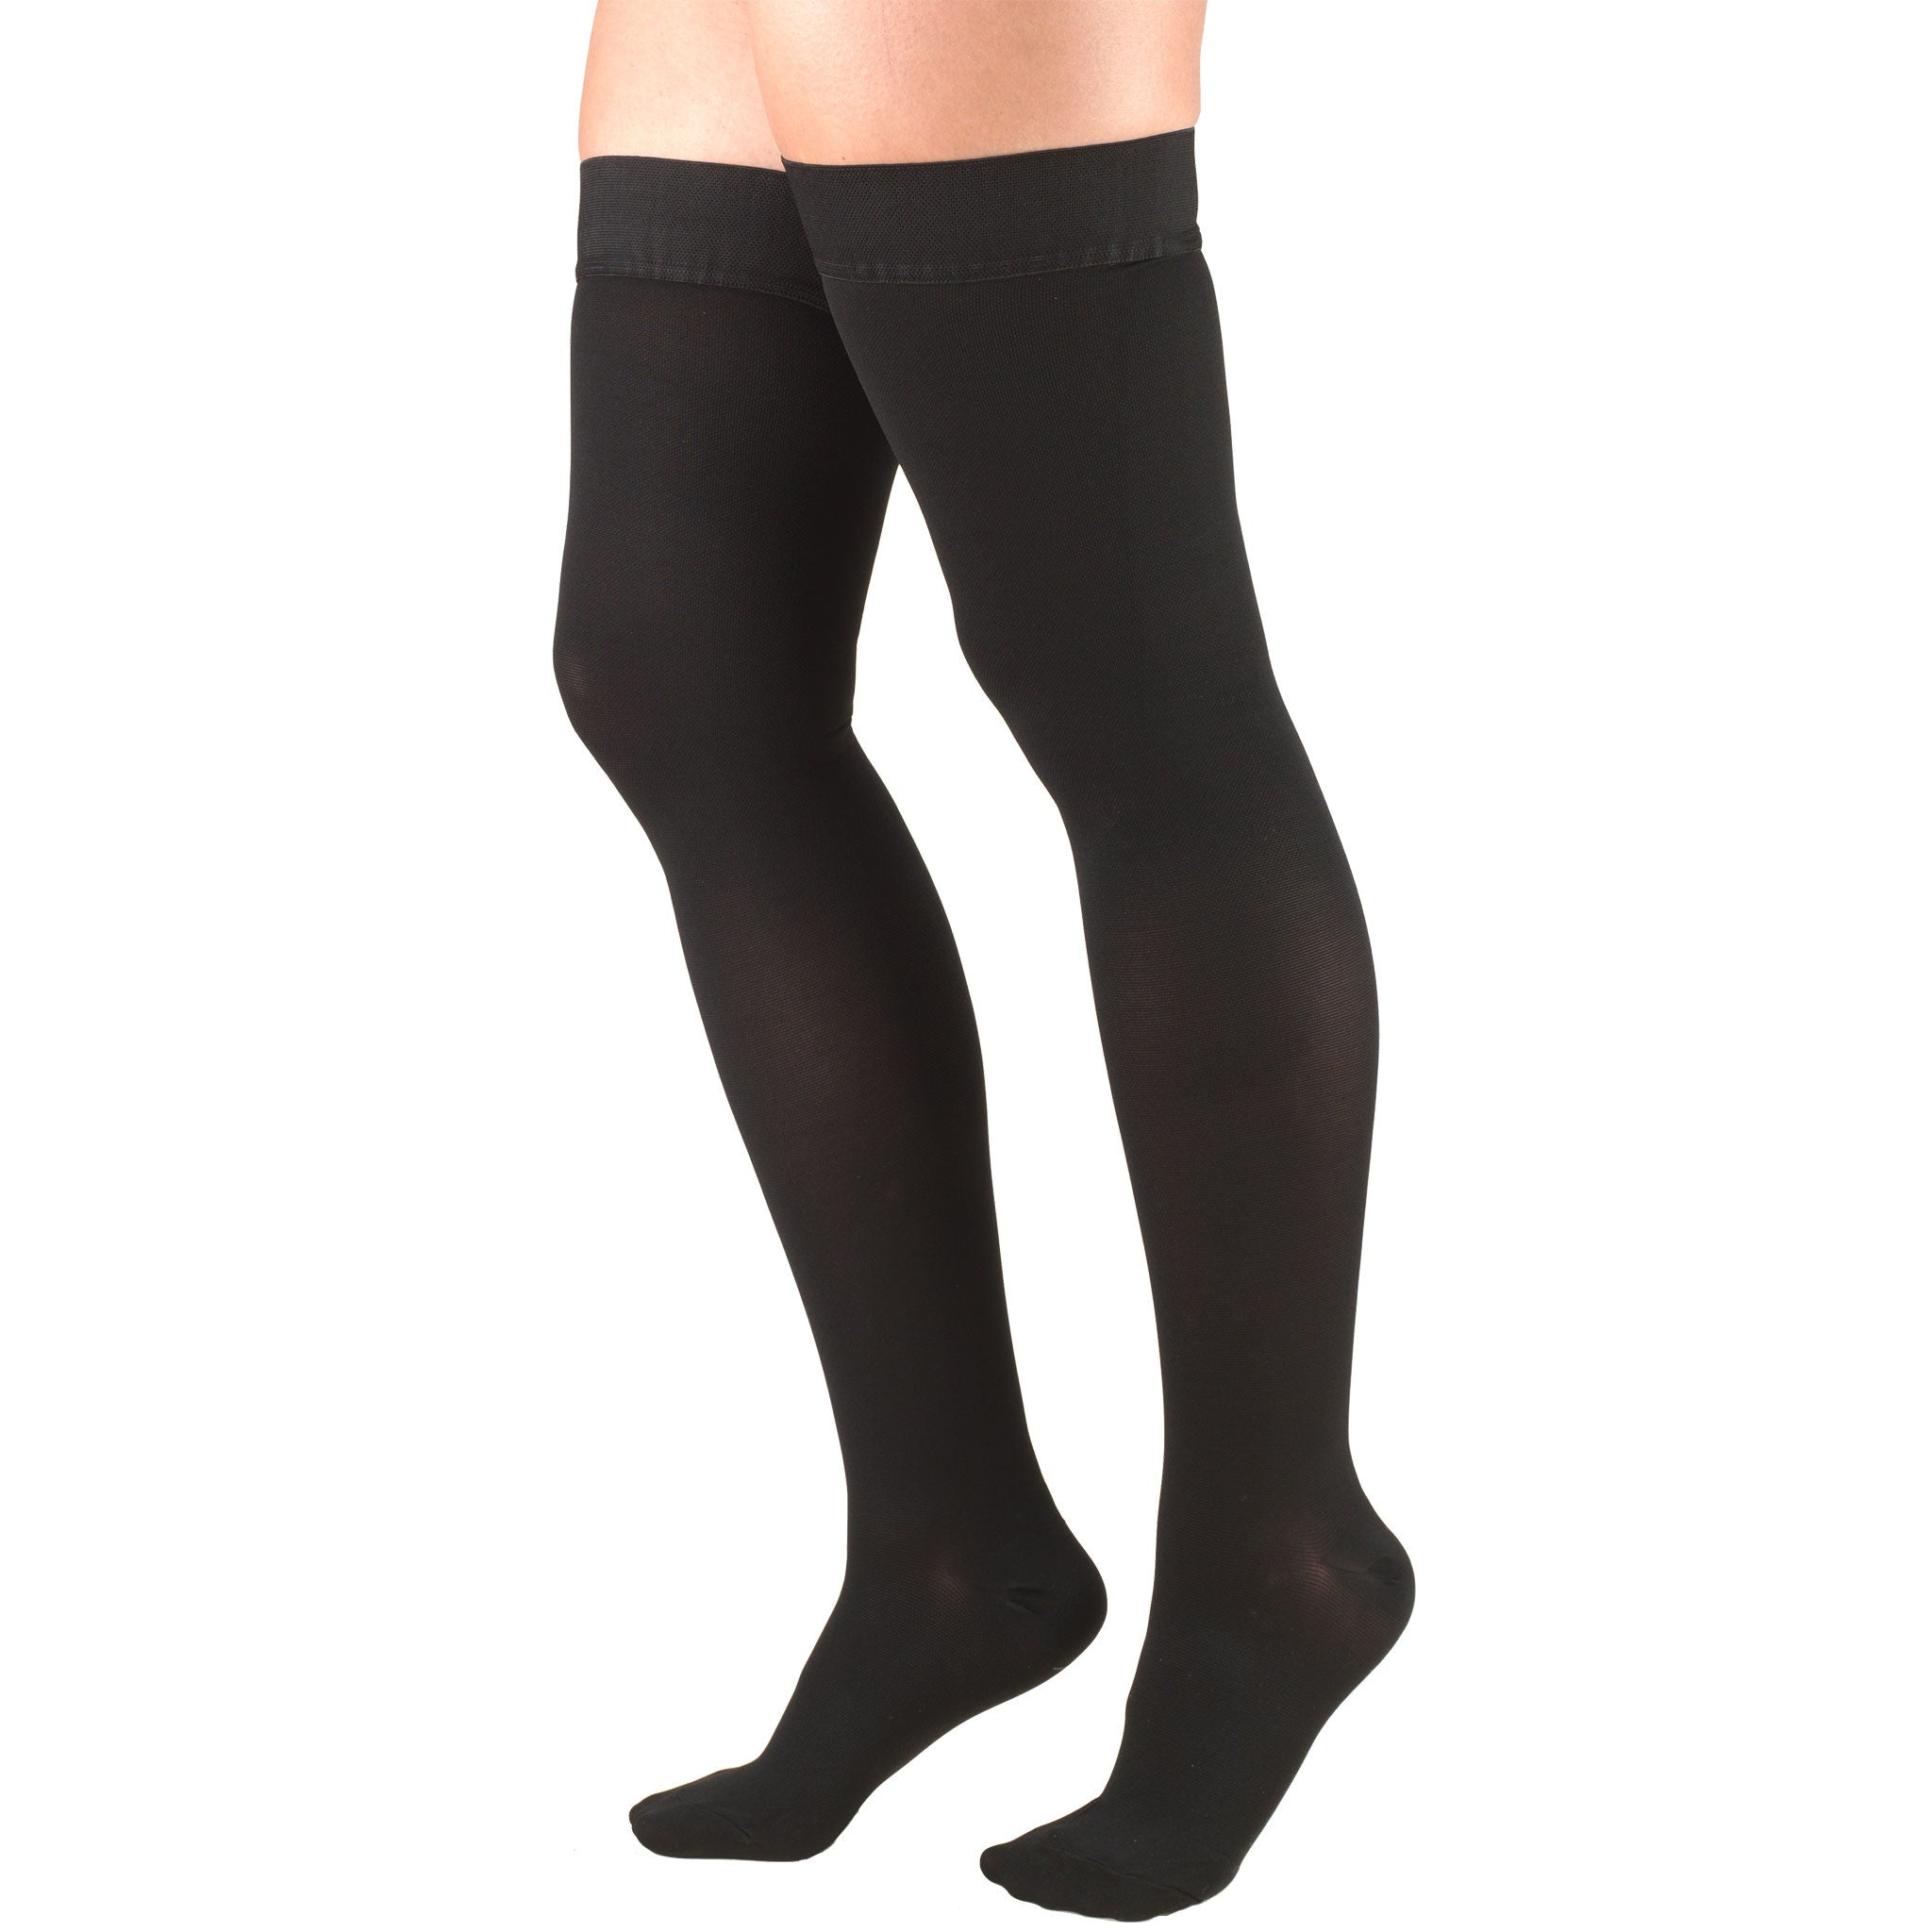 8868 THIGH HIGH CLOSED TOE BLACK STOCKINGS